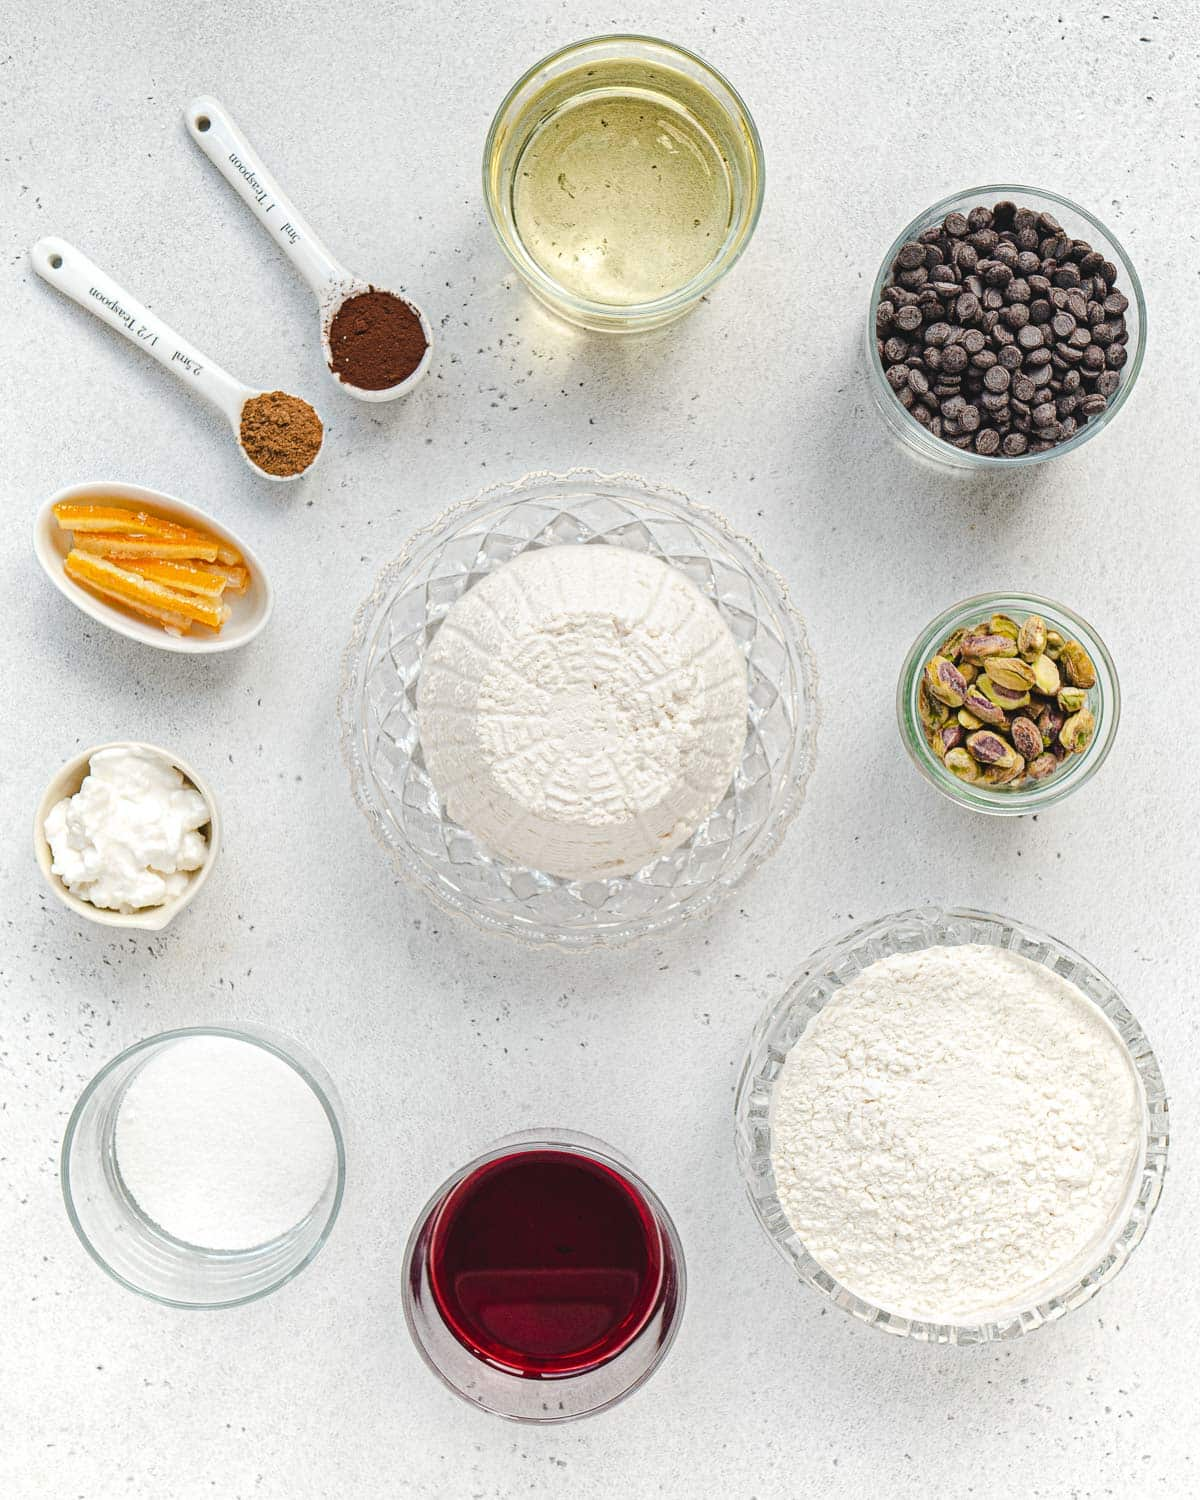 ingredients to make the shells and filling